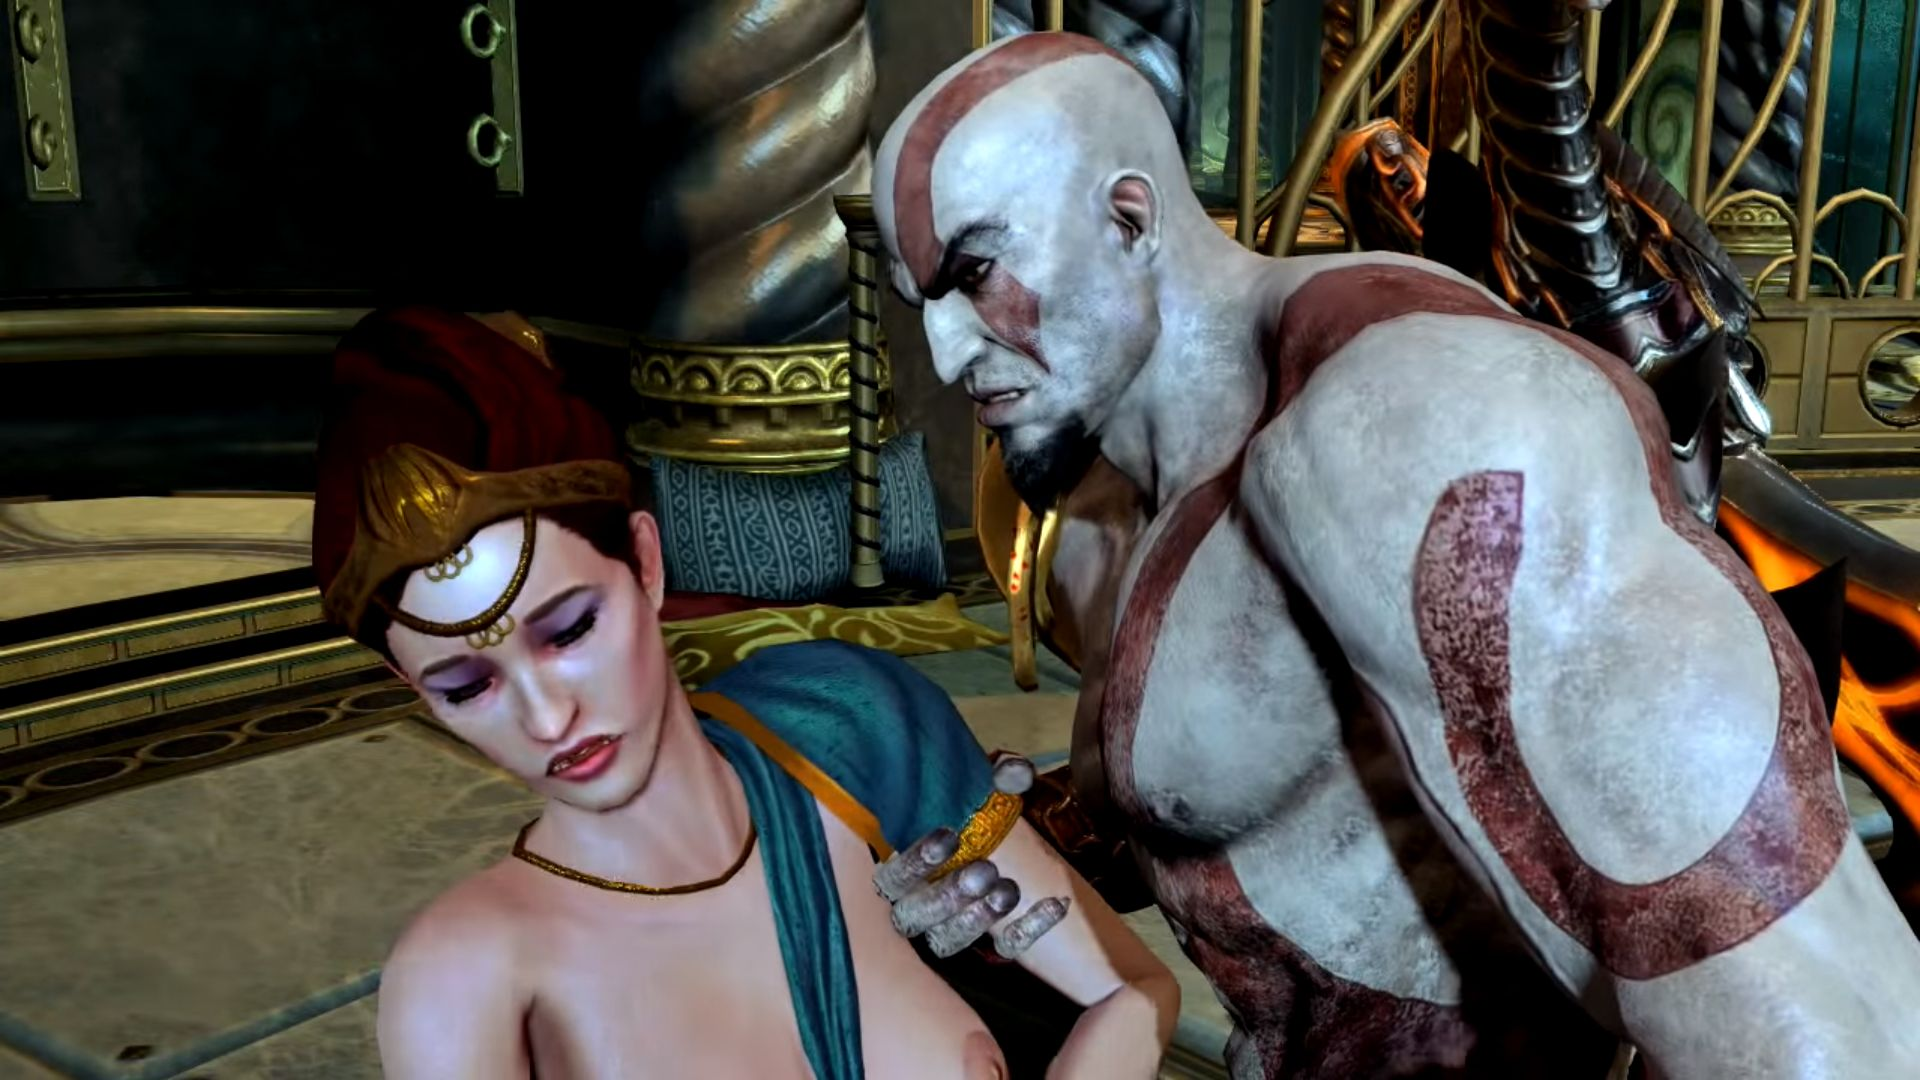 god of war naked picture girl